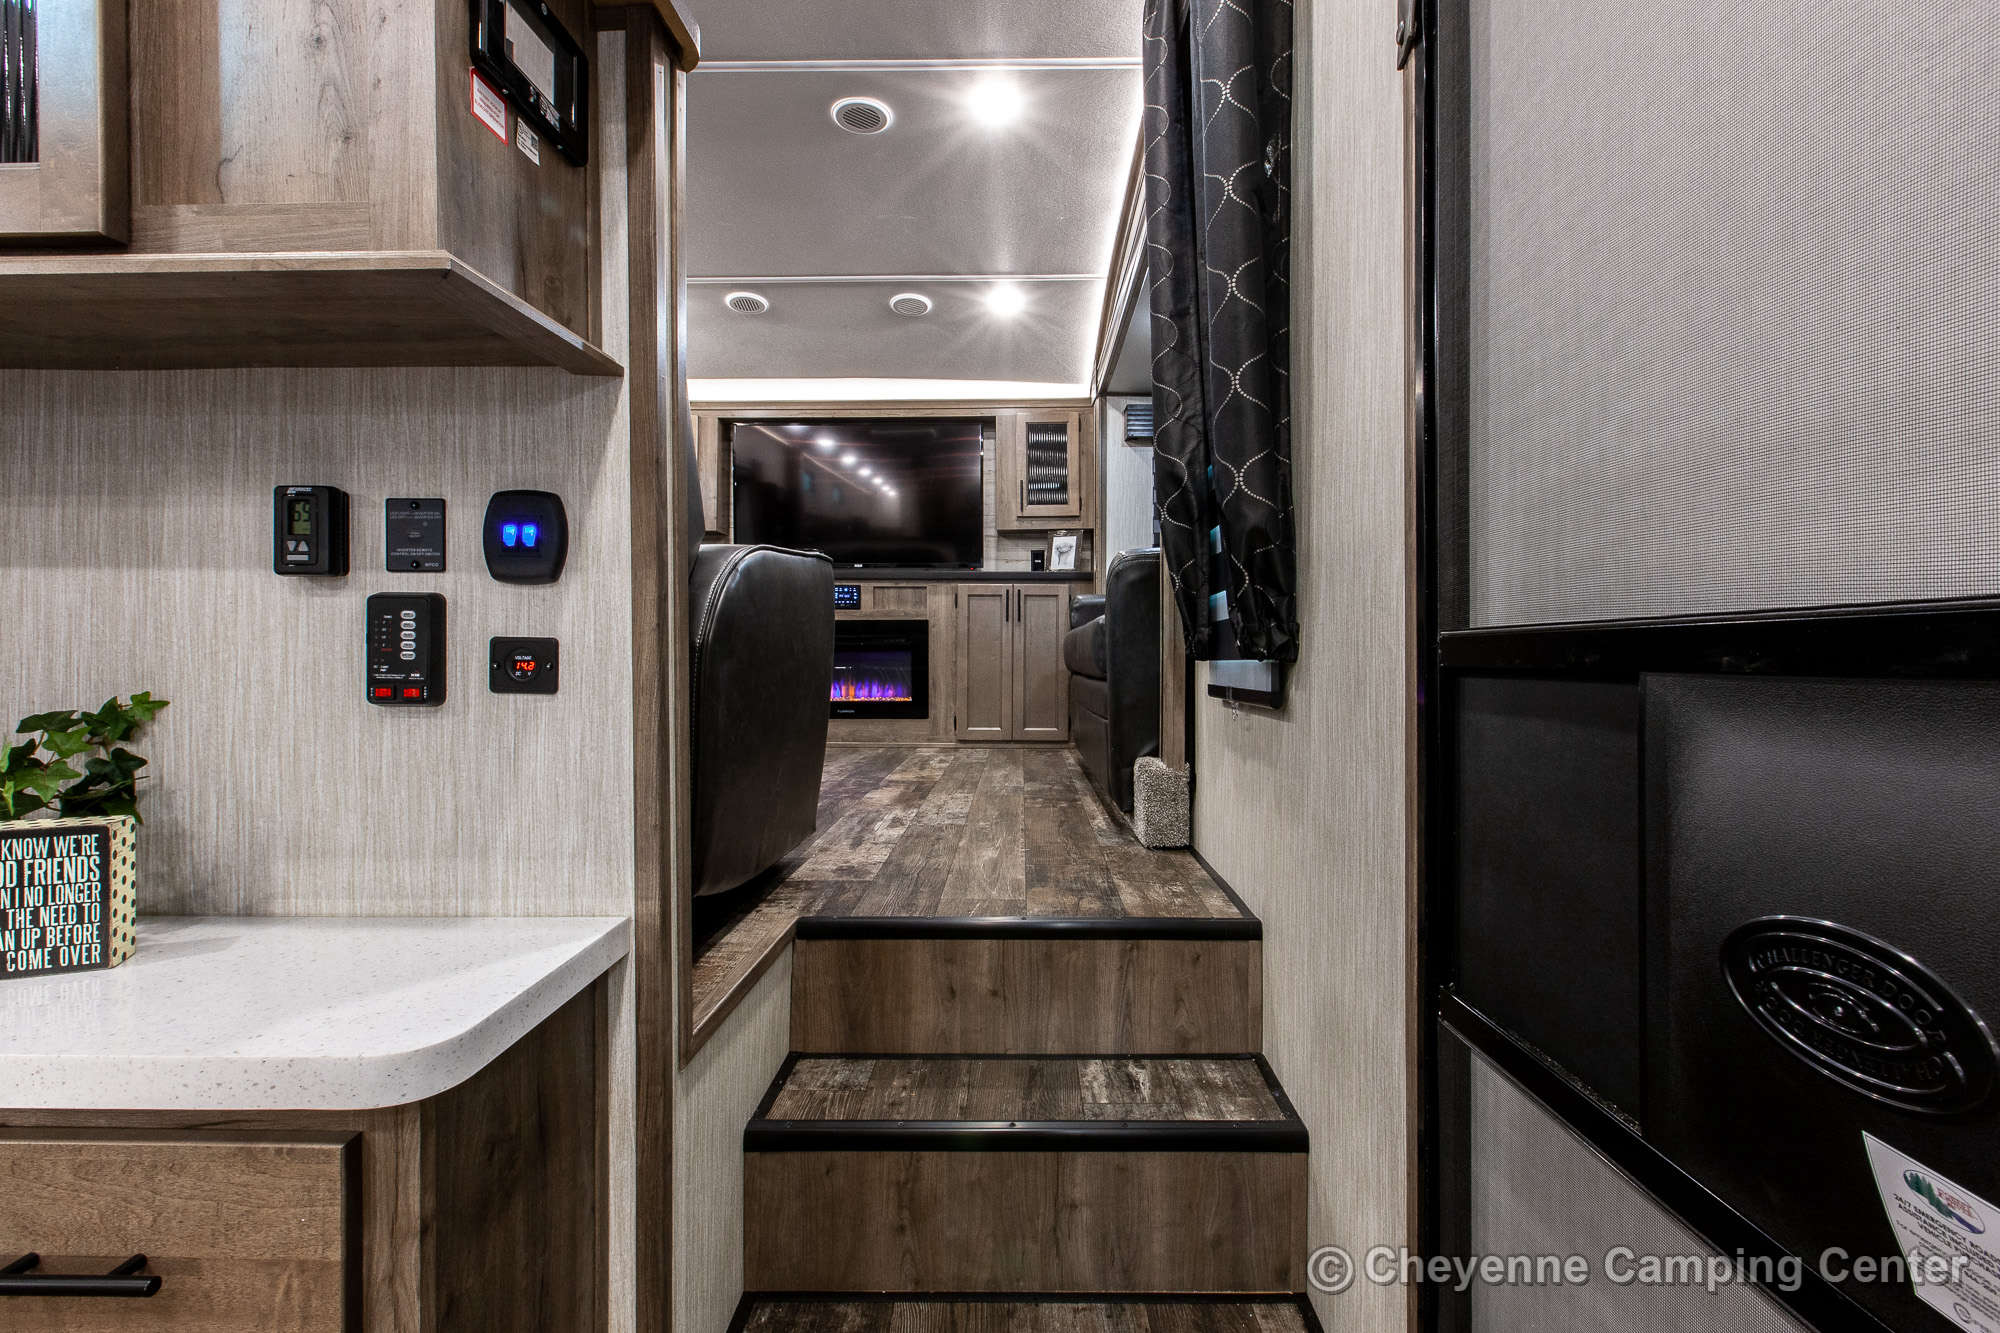 2021 Forest River Sabre Cobalt Edition 37FLL Bunkhouse Fifth Wheel Interior Image